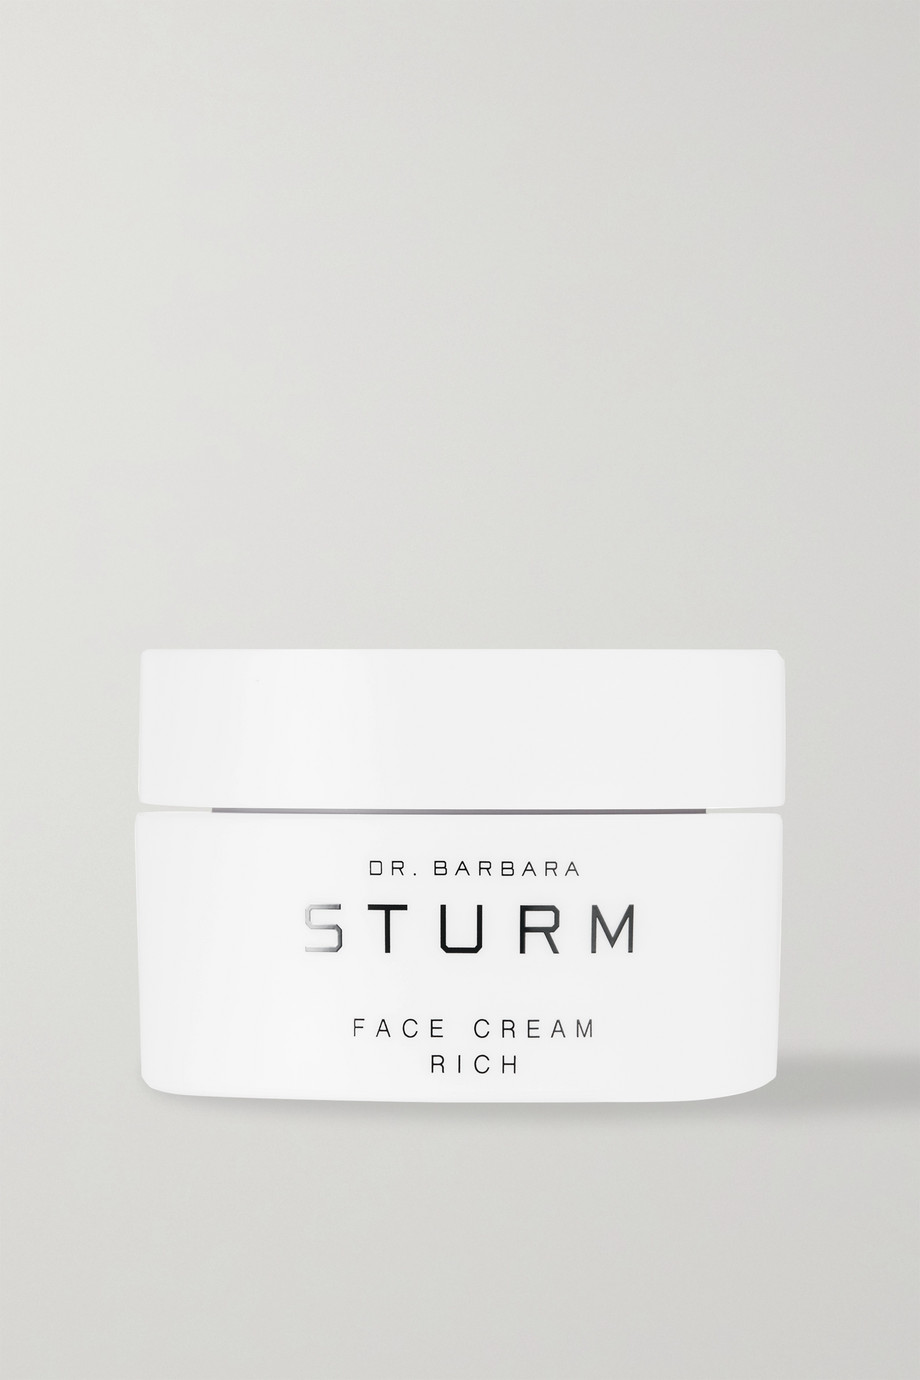 Dr. Barbara Sturm Face Cream Rich, 50 ml – Gesichtscreme